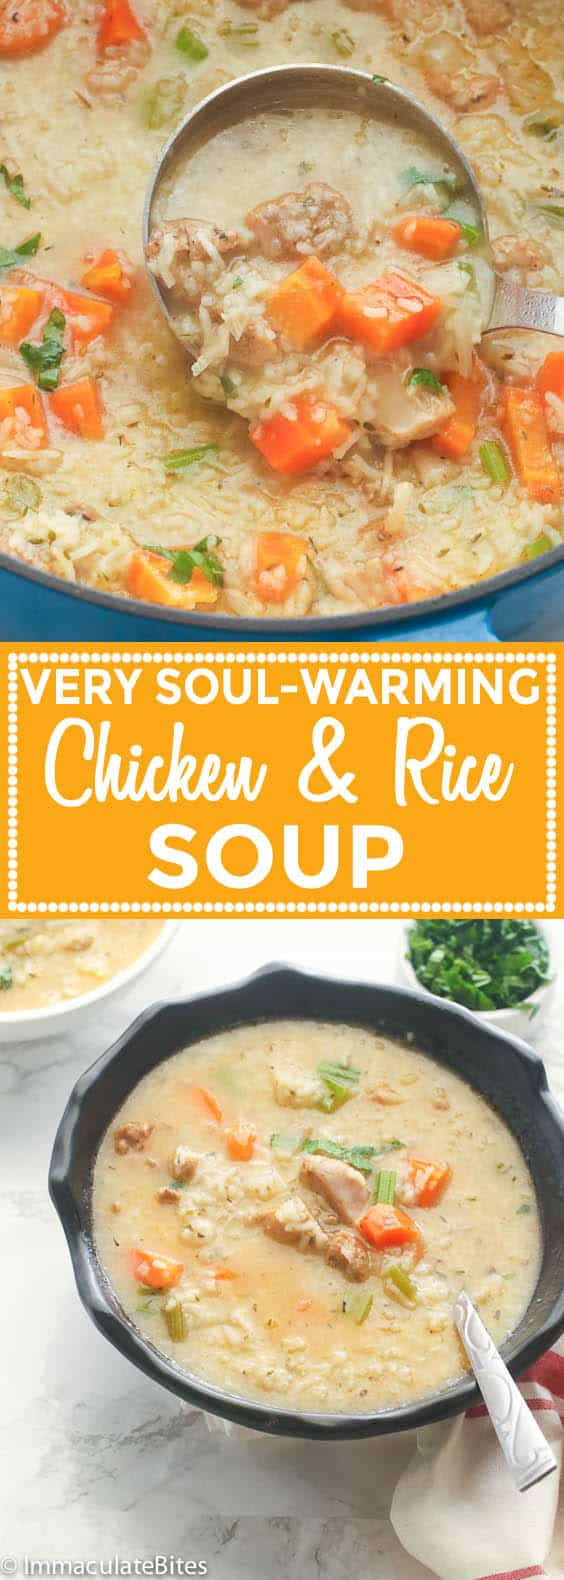 Chicken and Rice Soup